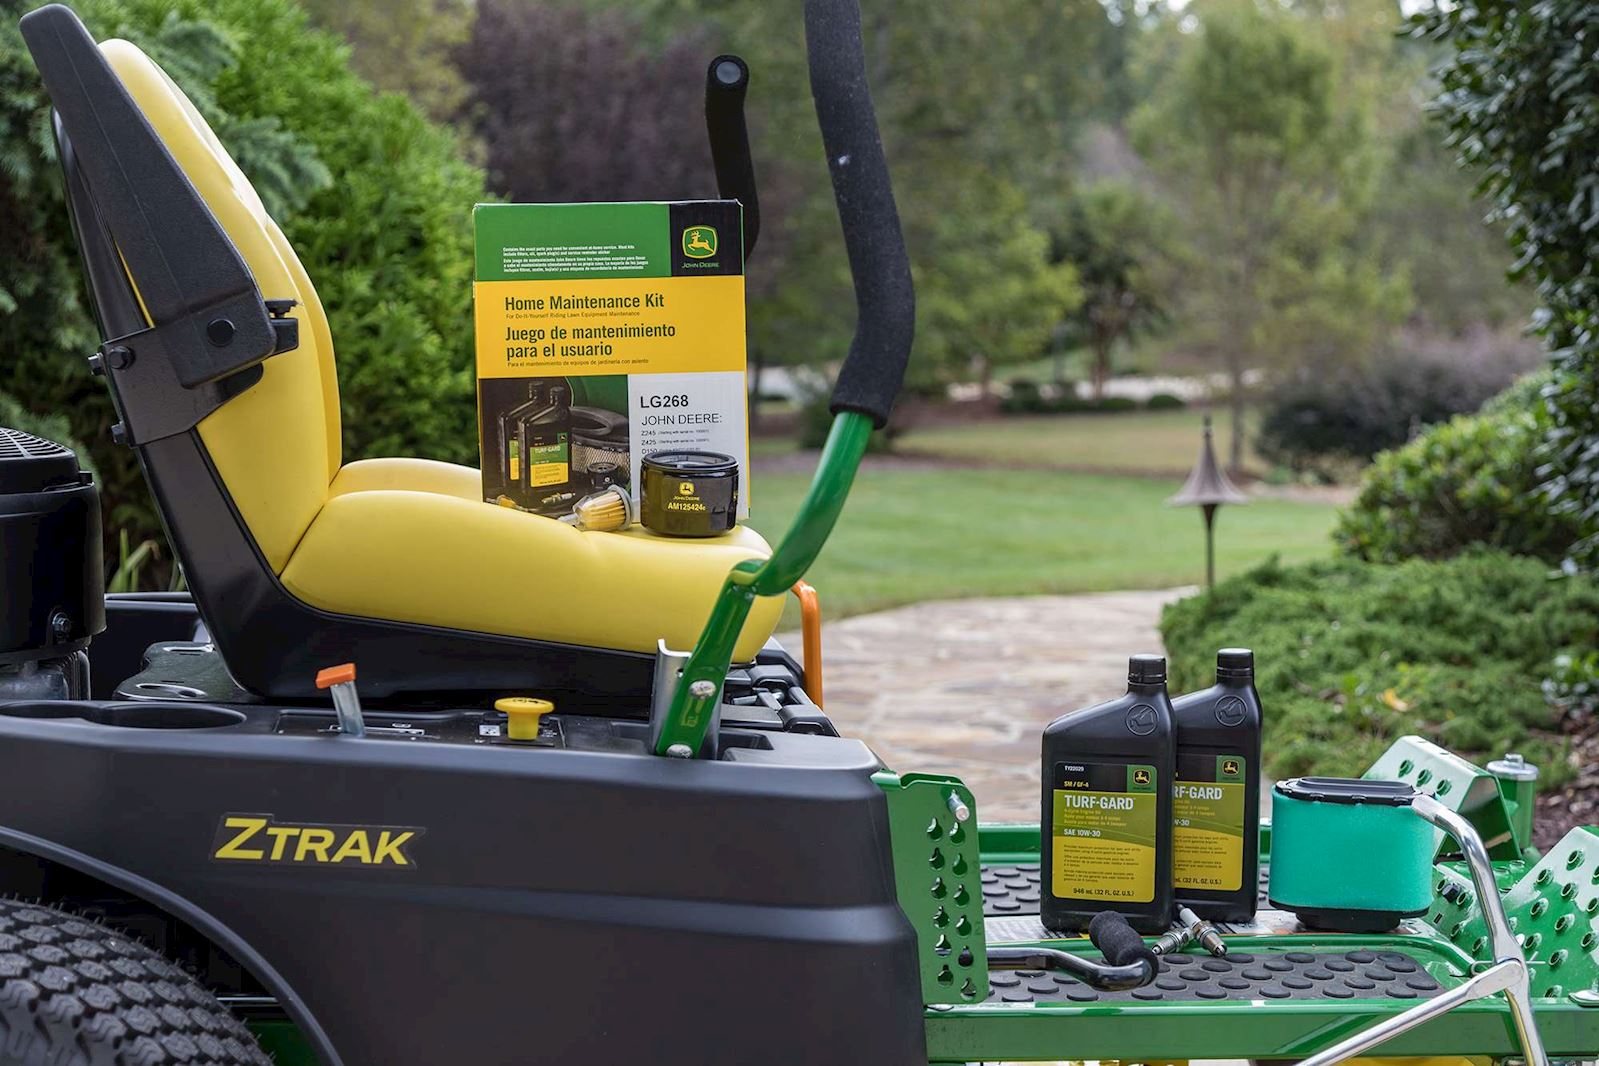 7 Tips for Prepping Your Lawn Mower for Spring-time Work